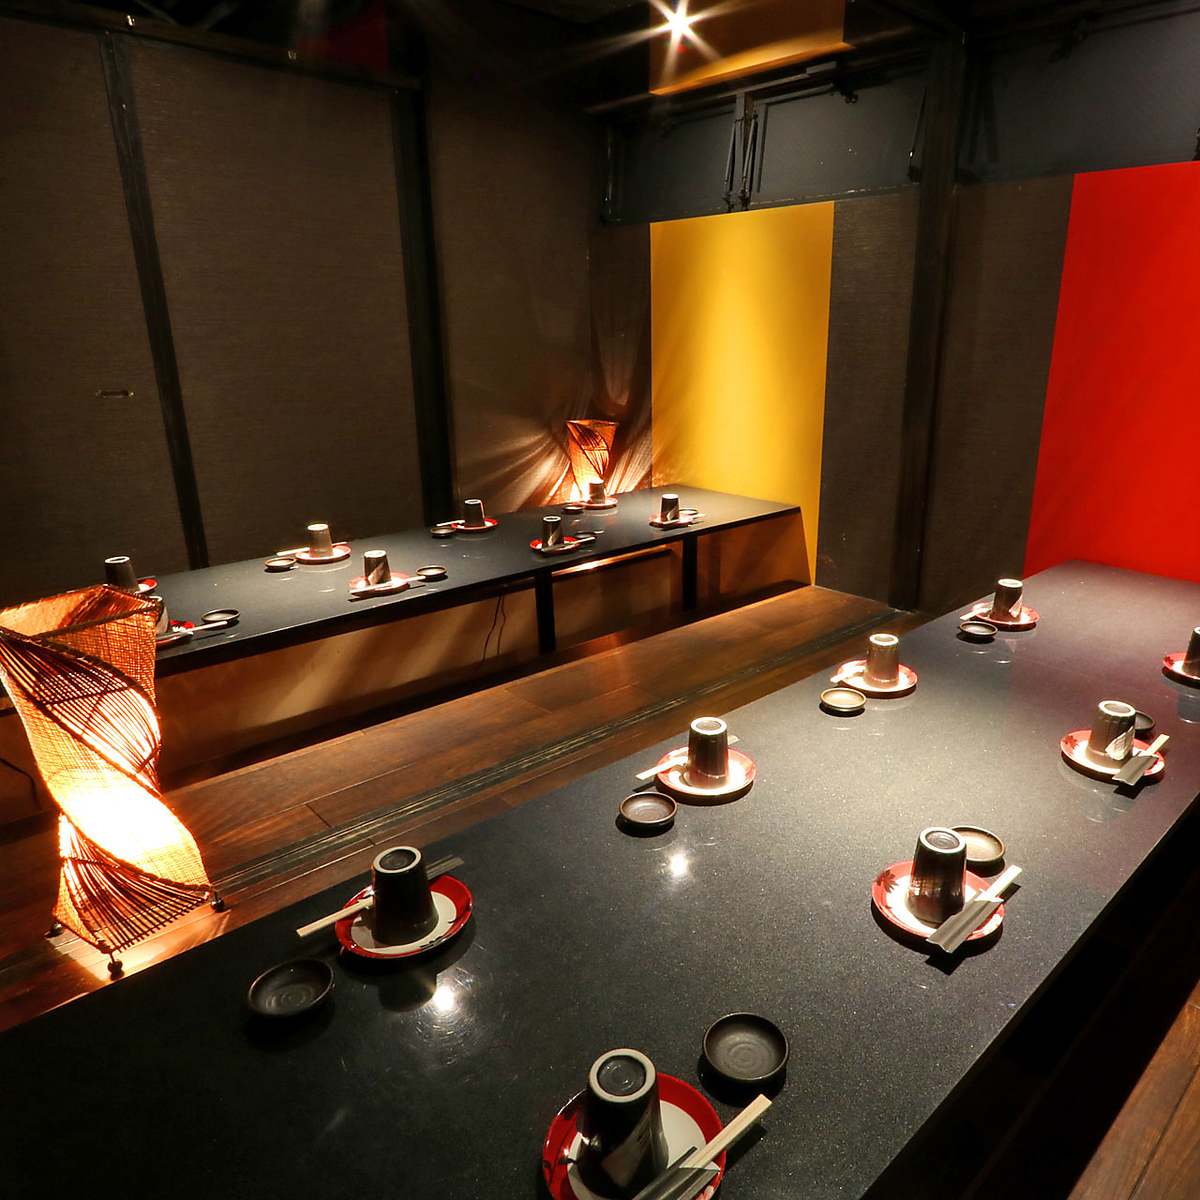 ☆ It is a Kawaguchi private room 居酒 屋 柚 之 Kawaguchi store ☆ at the meeting party, fellows and girls' association ★